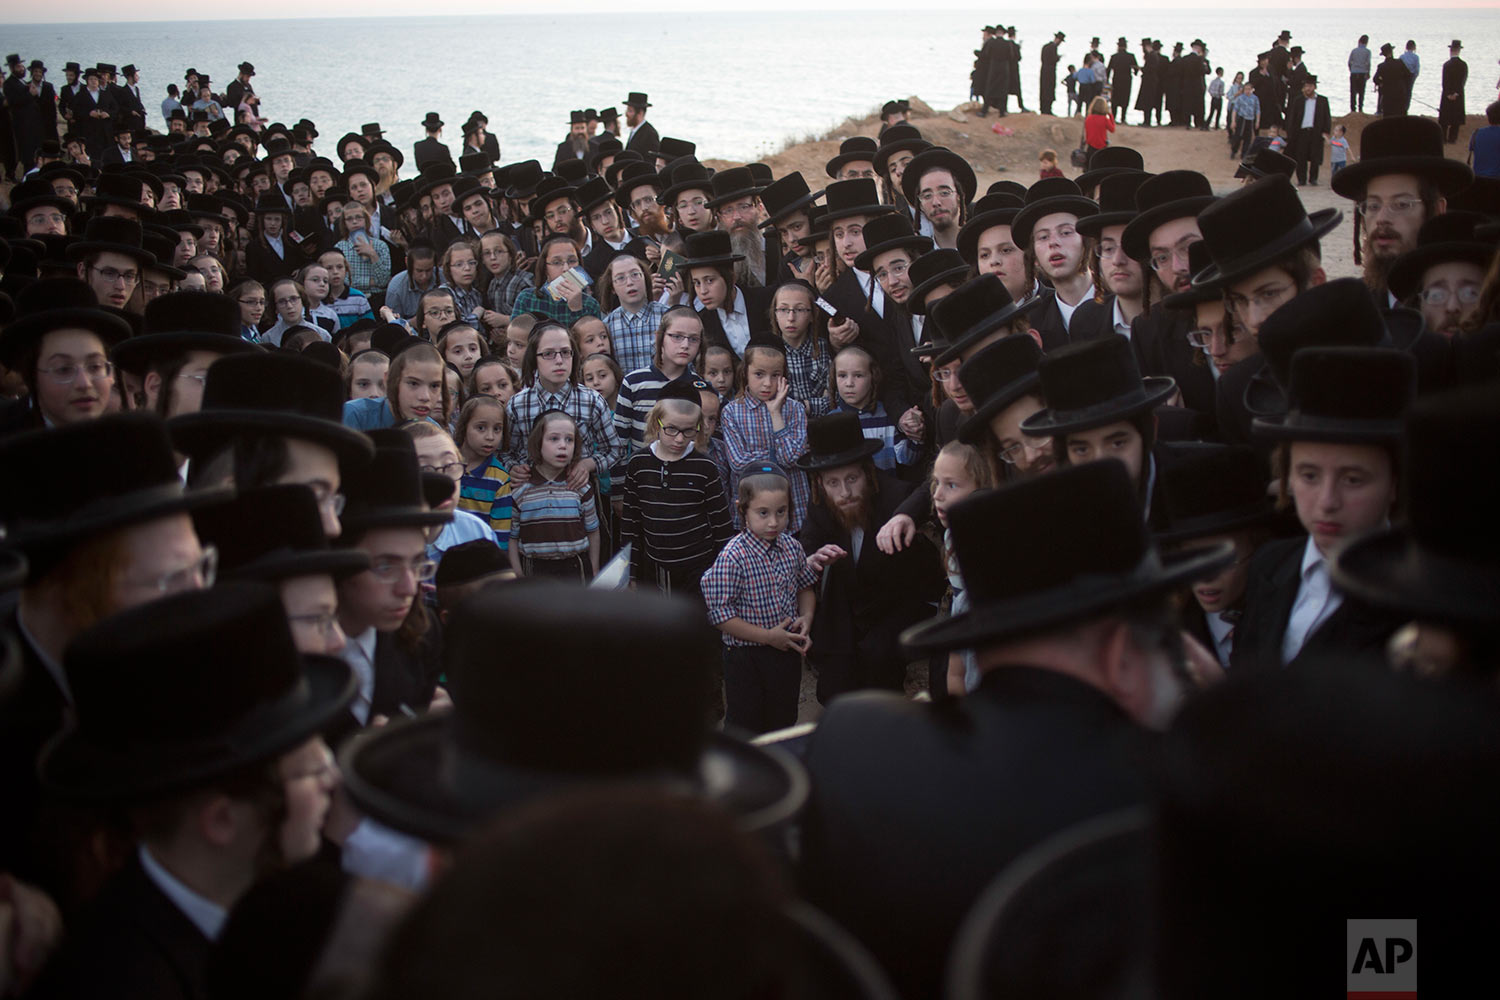 Ultra-Orthodox Jewish men of the Vizhnitz Hassidic sect listen to their rabbi on a hill overlooking the Mediterranean Sea as they participate in a Tashlich ceremony in Herzeliya, Israel, Thursday, Sept. 28, 2017. (AP Photo/Ariel Schalit)